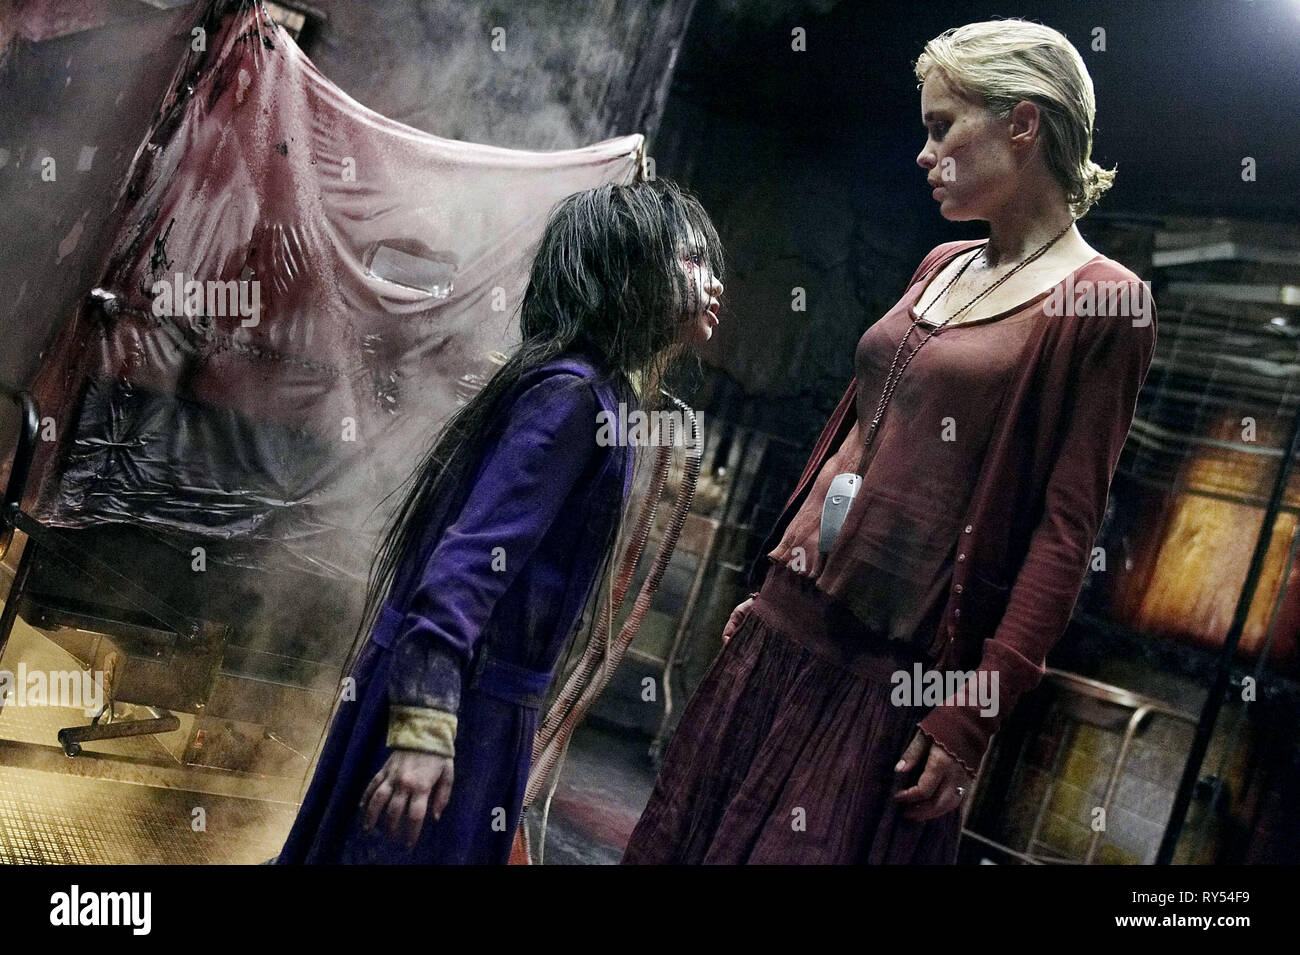 Silent Hill Movie High Resolution Stock Photography And Images Alamy